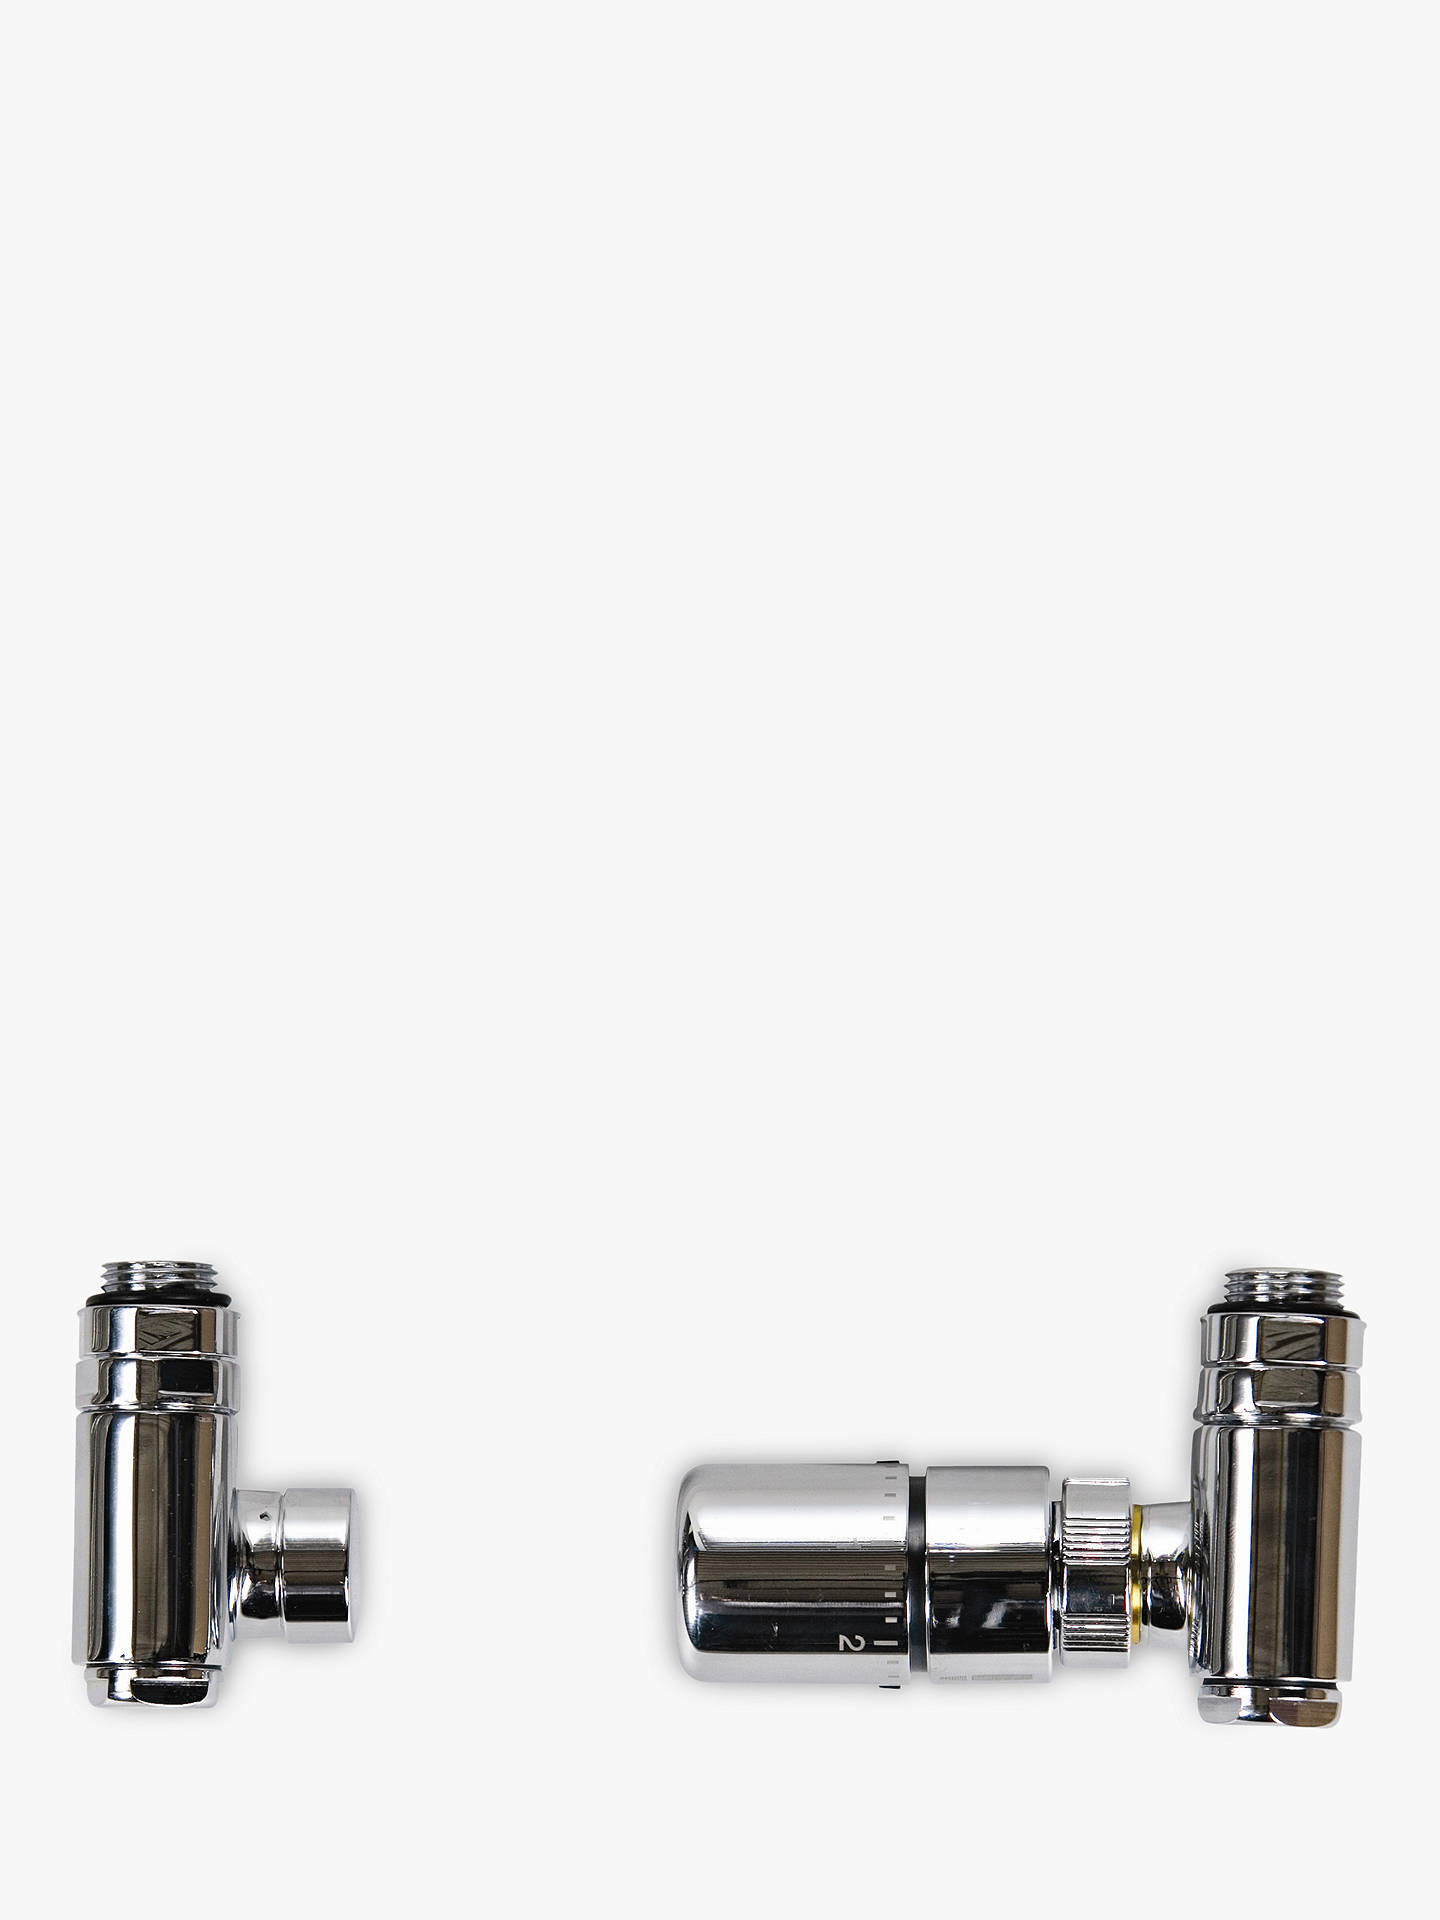 BuyJohn Lewis & Partners Radiator TRV Duel Fuel Valves, Polished Chrome Online at johnlewis.com